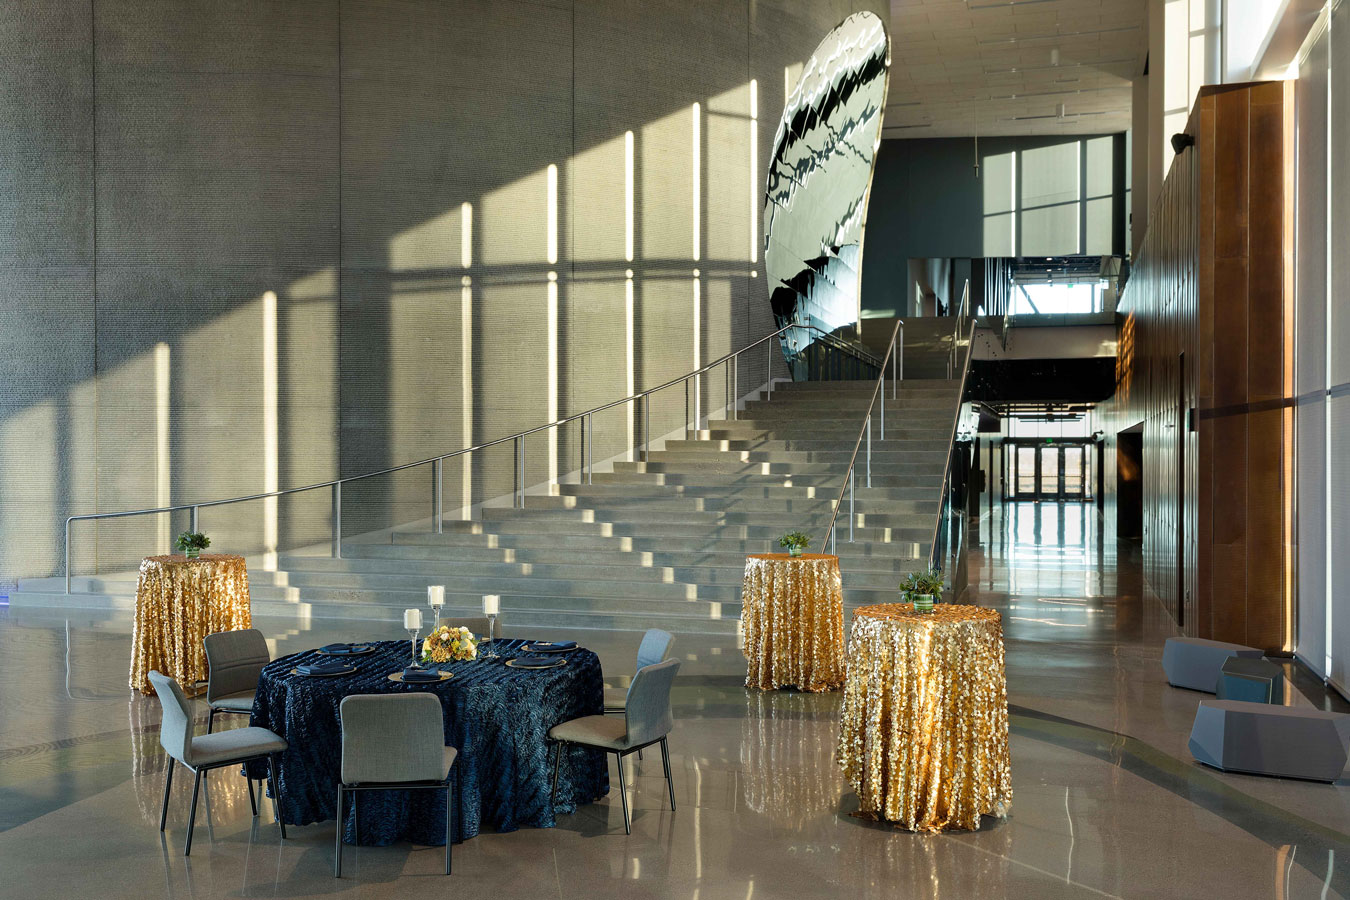 High top tables with sparkly gold table cloths and a round table set for dinner in front of Horizon Hall's grand staircase